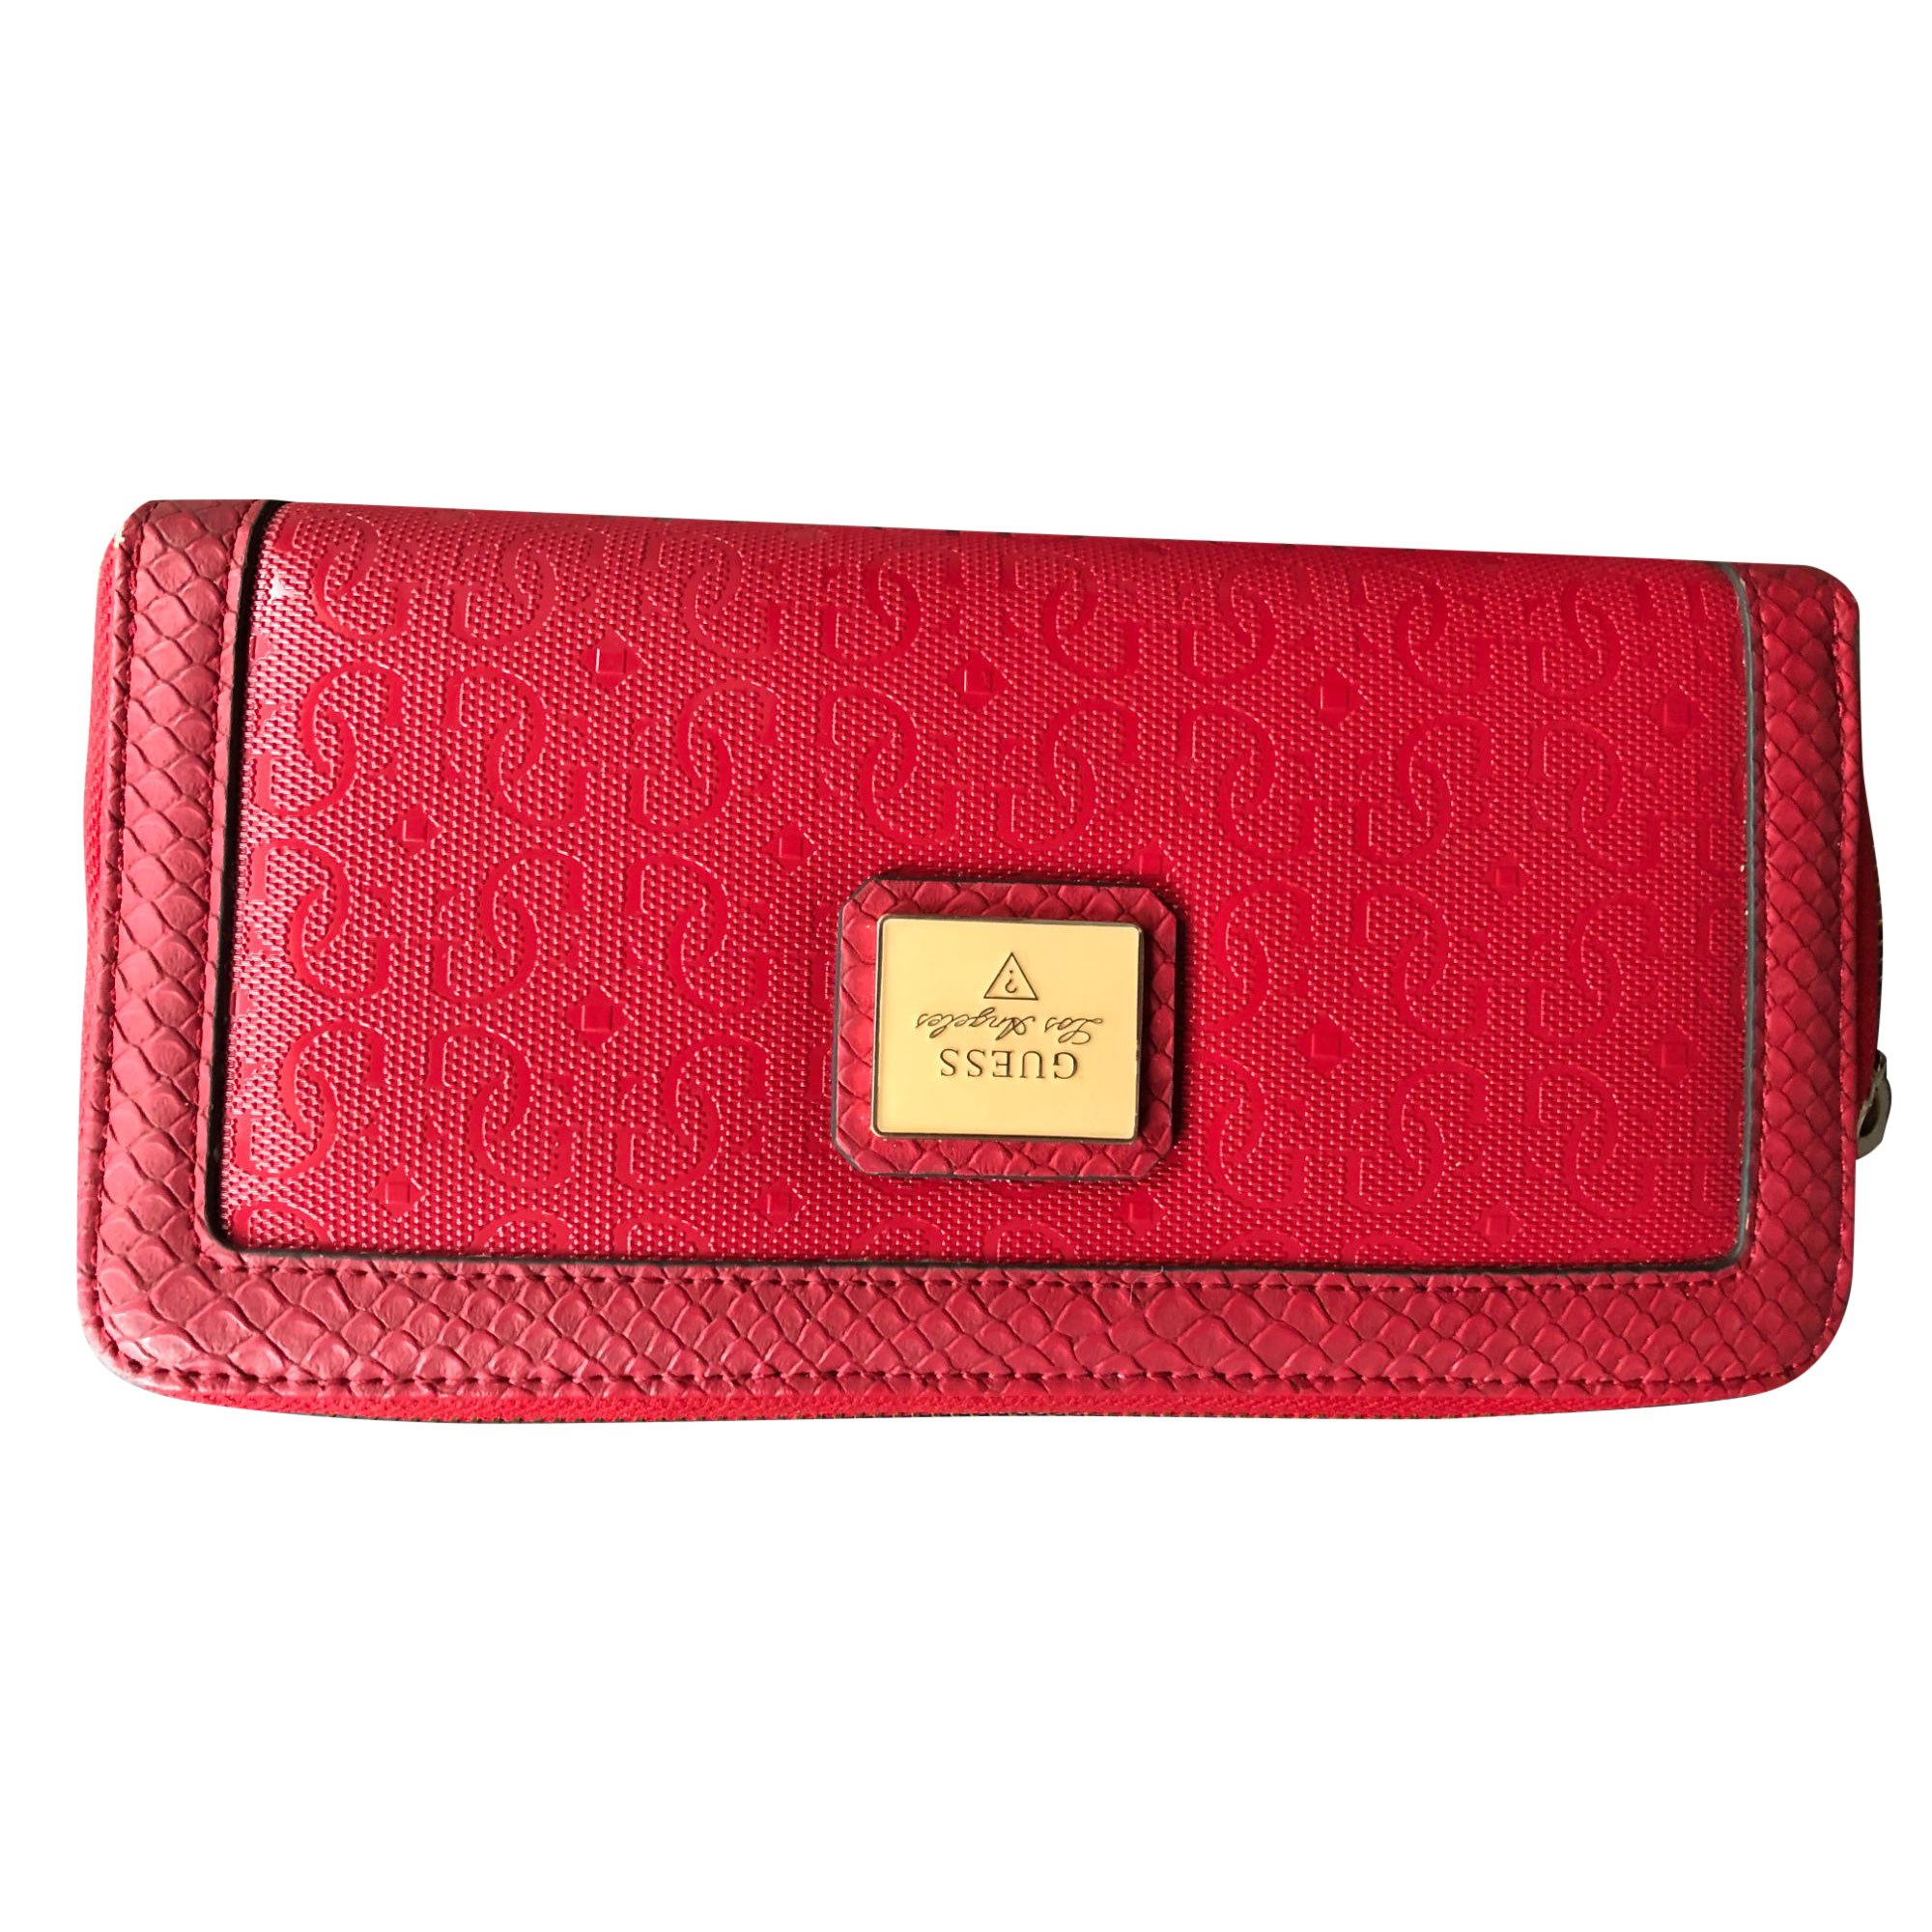 Portefeuille Guess Rouge 8519574